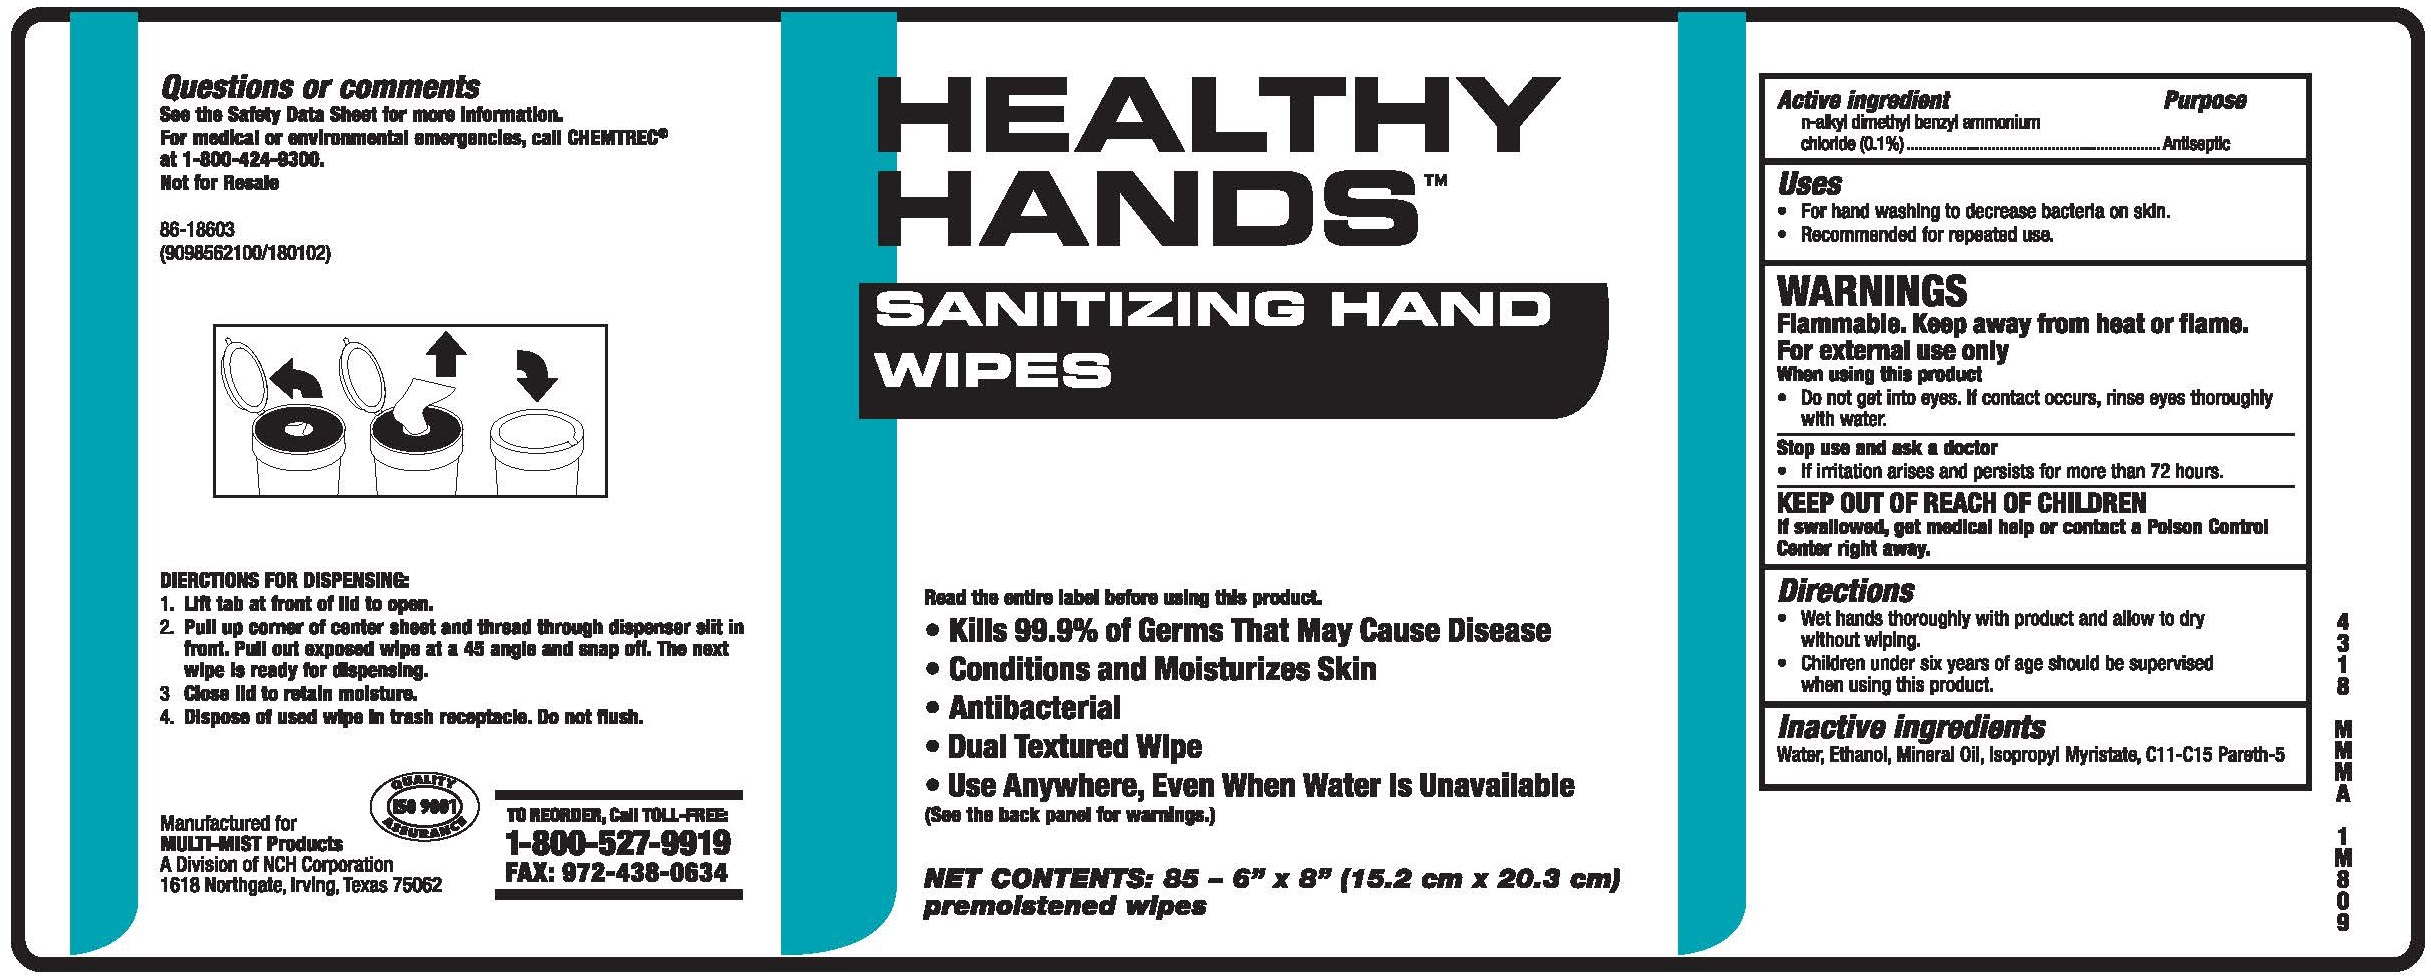 Healthy Hands Sanitizing Hand Wipes